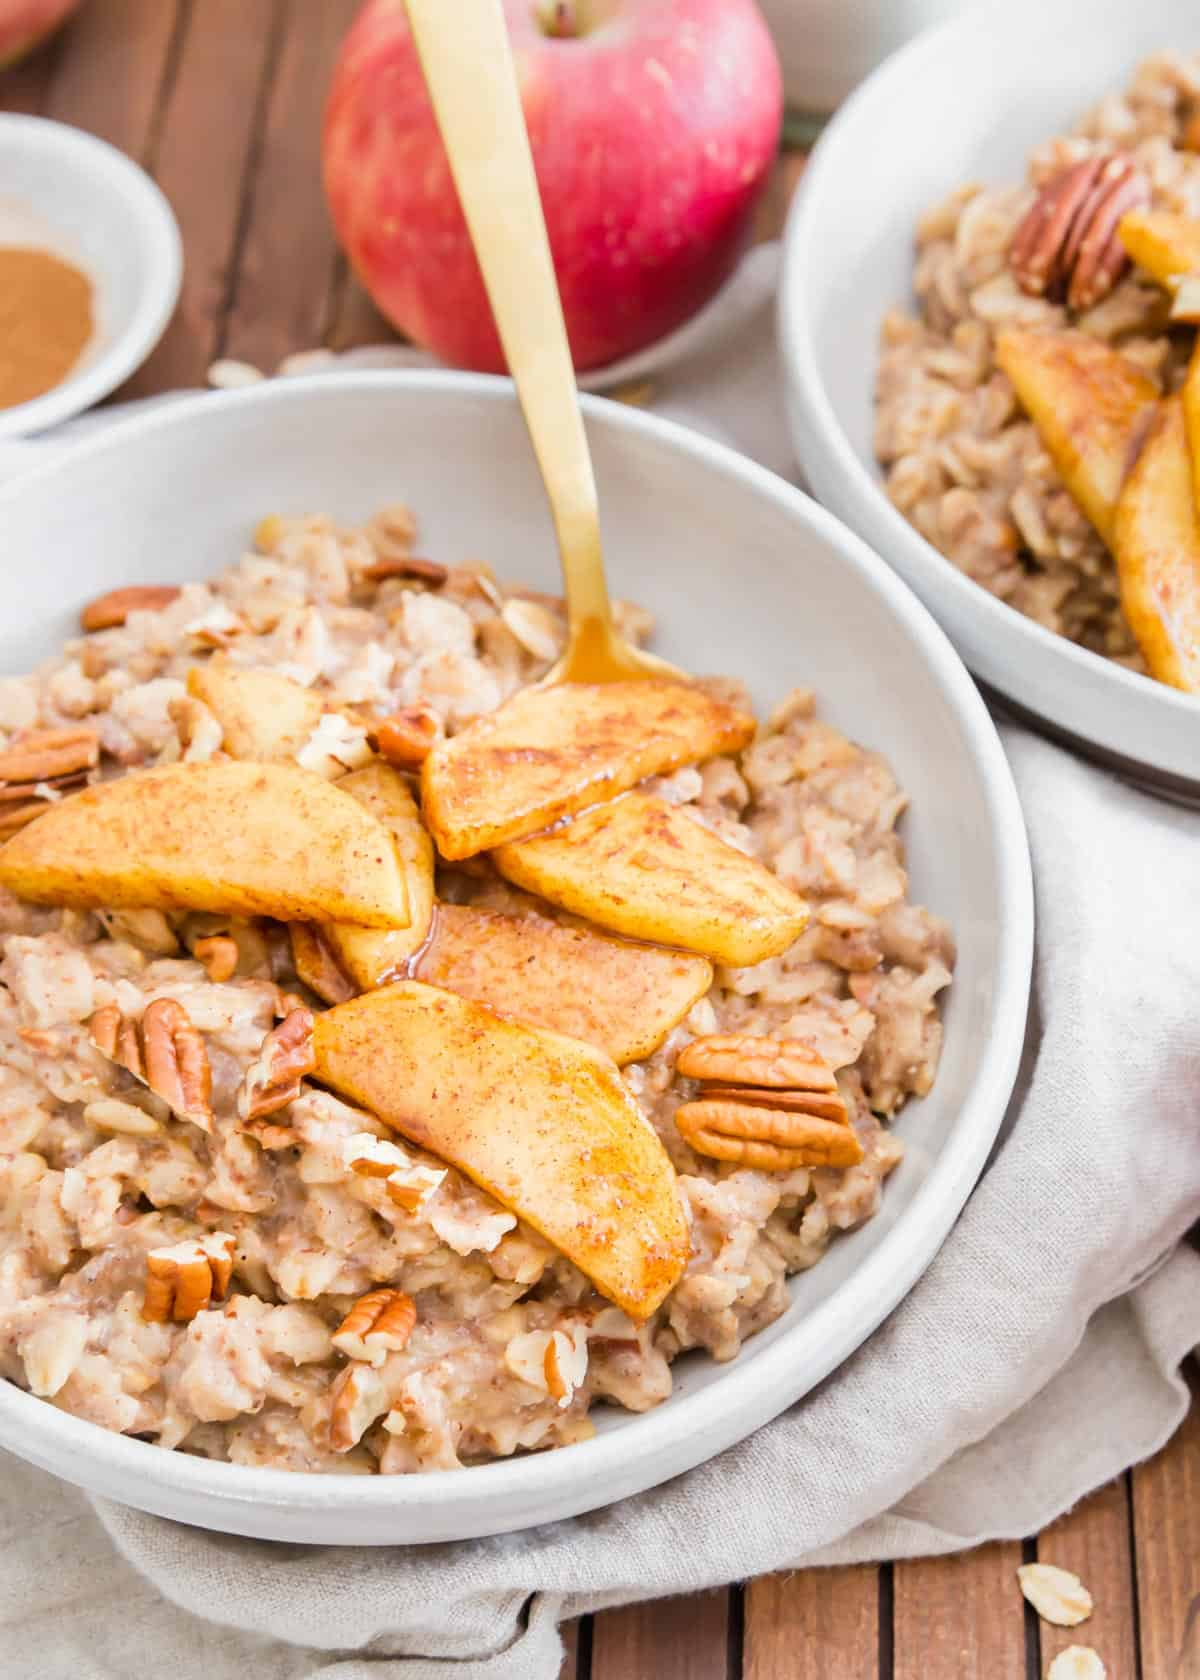 Easy stovetop apple cinnamon oatmeal with chopped pecans and maple syrup cooked apple slices.